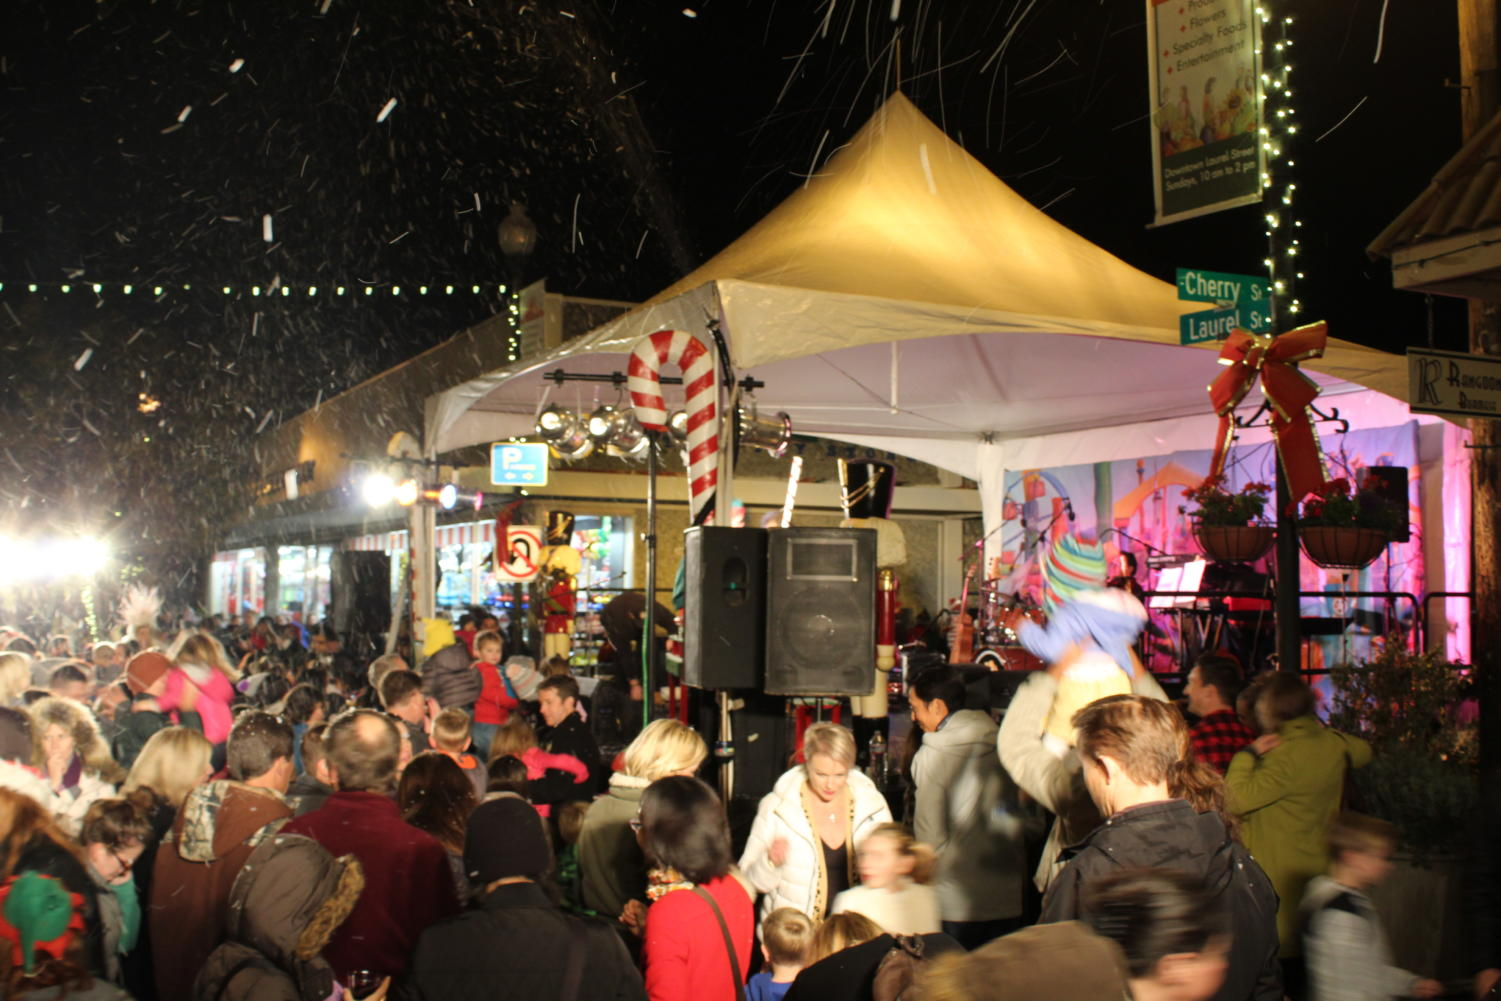 Crowds of people stand to watch the performance under fake snow generated by a bubble machine.